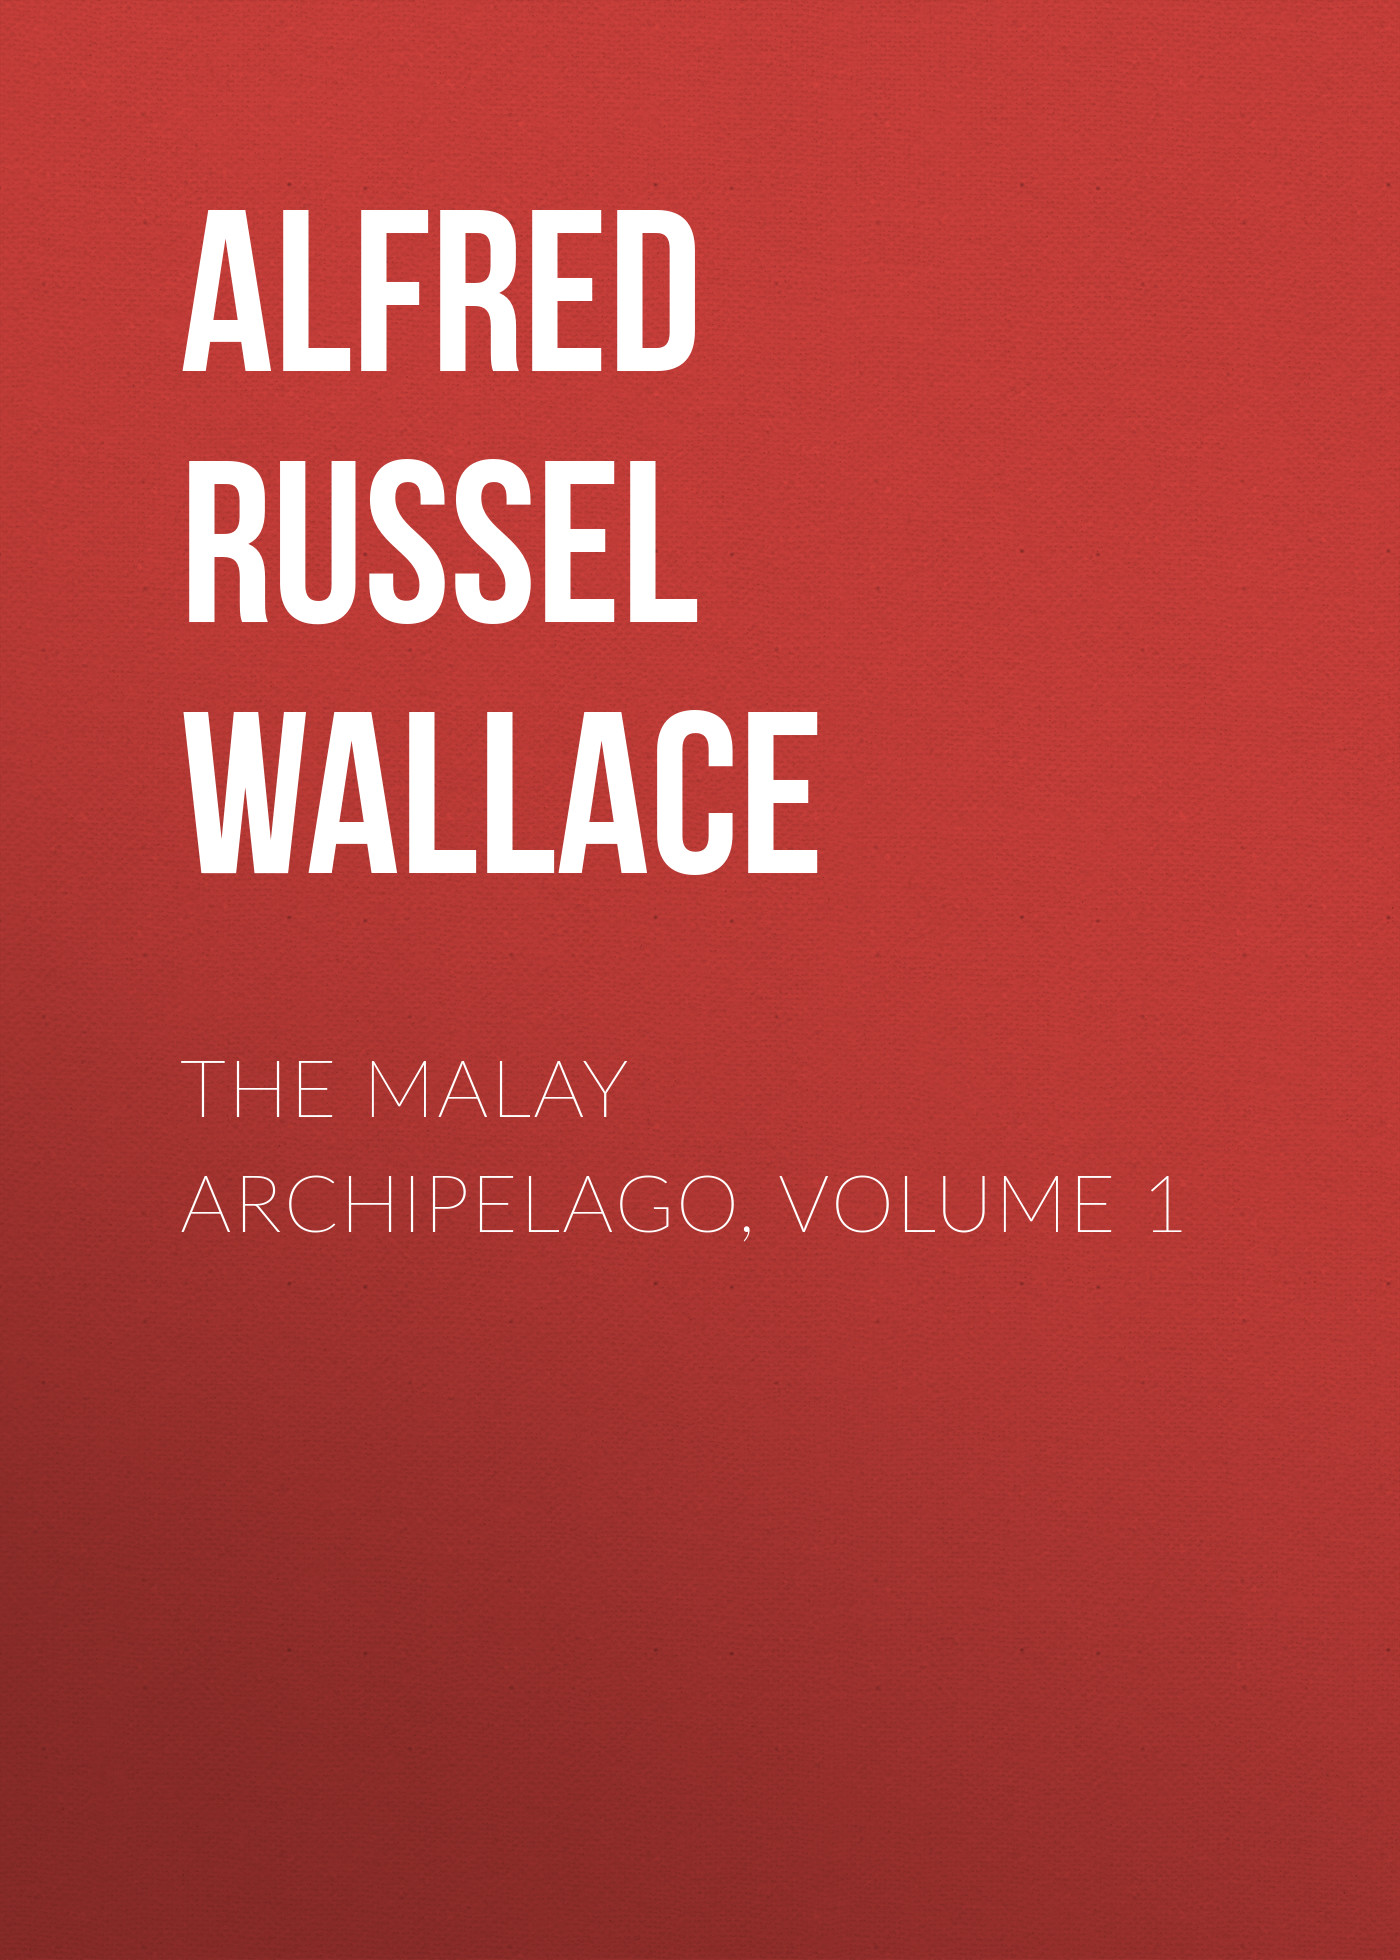 Alfred Russel Wallace The Malay Archipelago, Volume 1 modernization and the malay matrimonial foodways